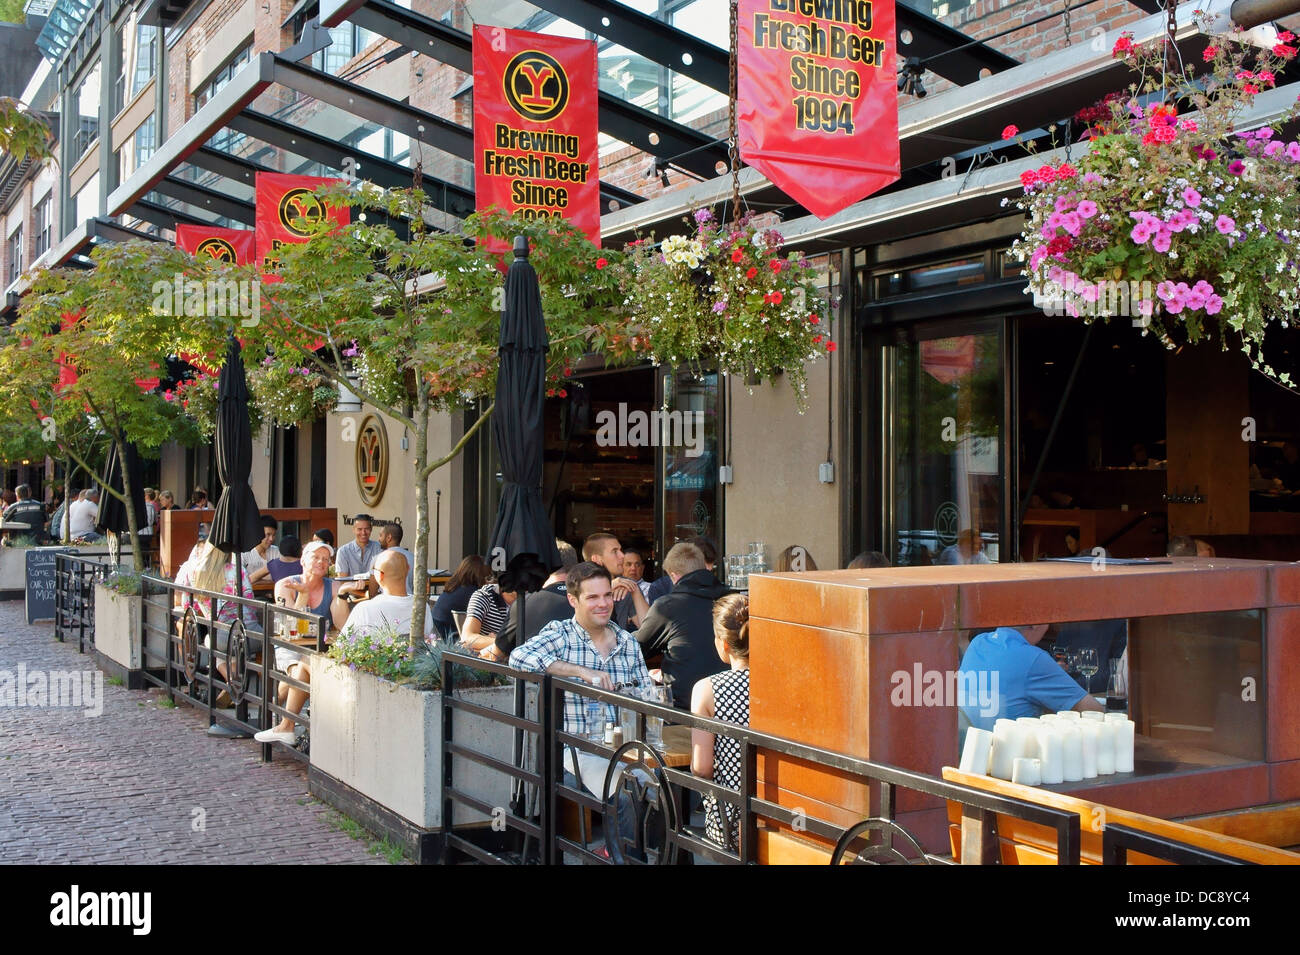 People Dining On Outdoor Patio Of The Yaletown Brewing Company Restaurant  In Yaletown, Vancouver, British Columbia, Canada Part 64